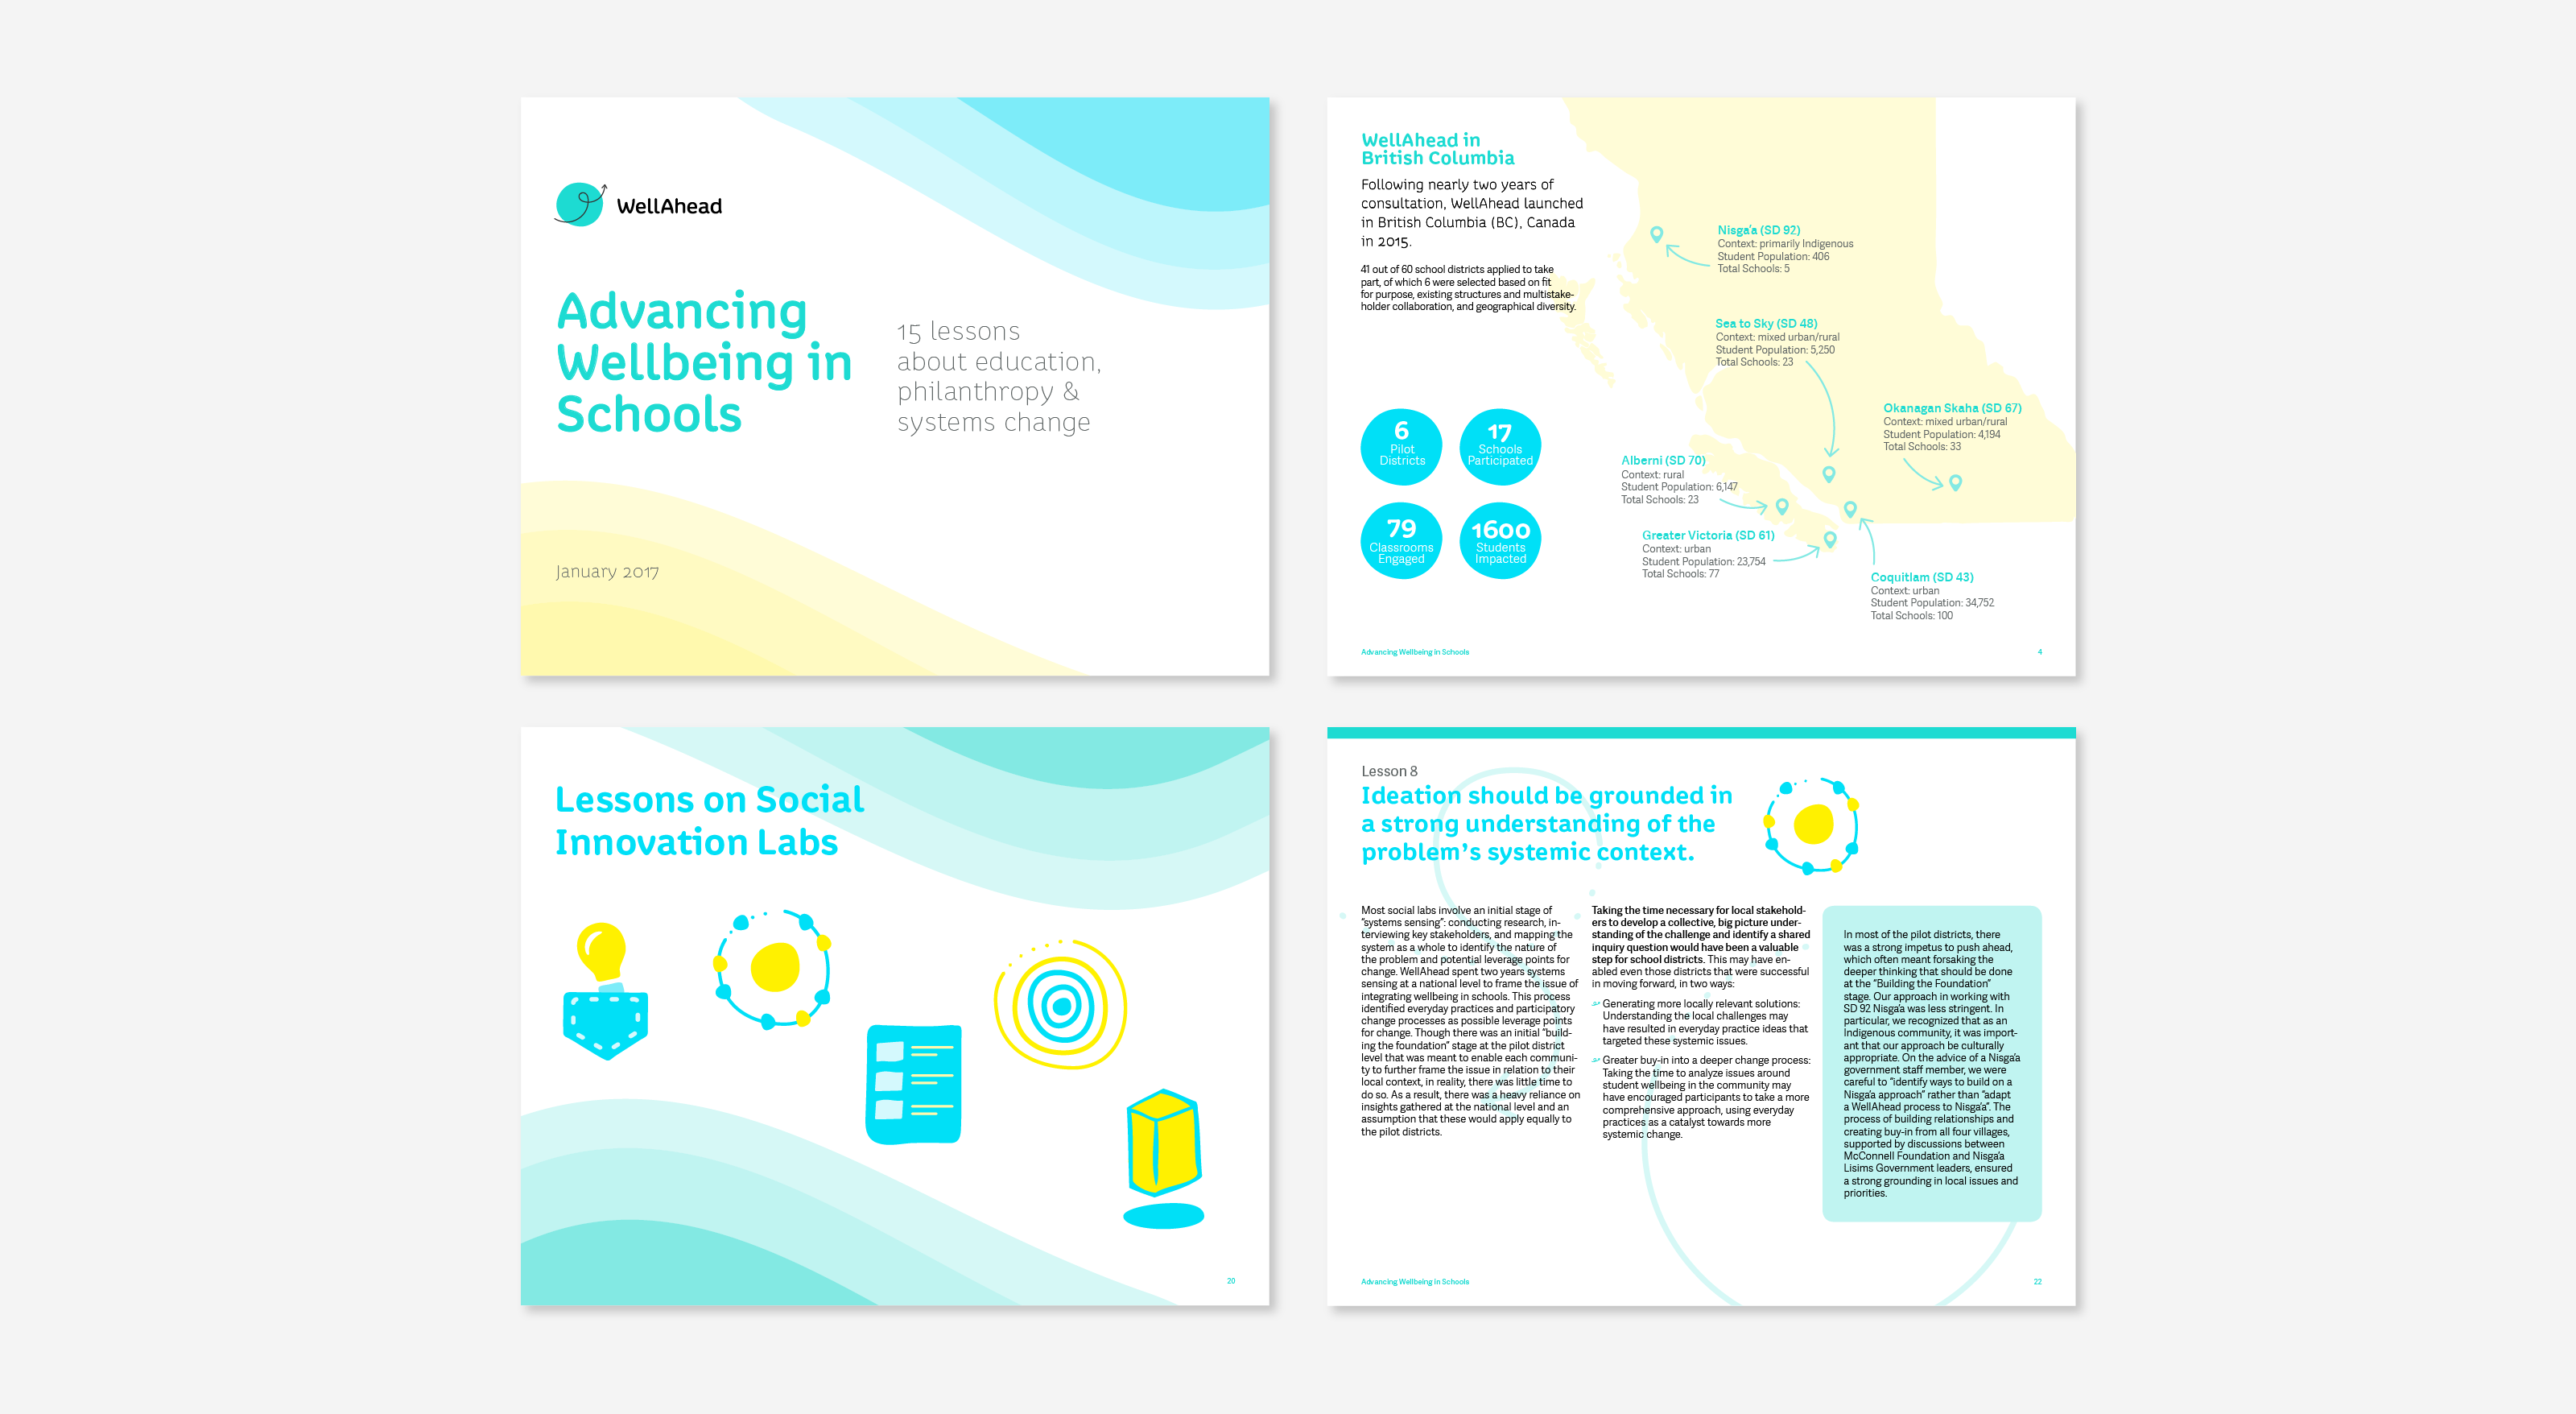 Sample pages from the full WellAhead report for 15 lessons about education, philanthropy & systems change.